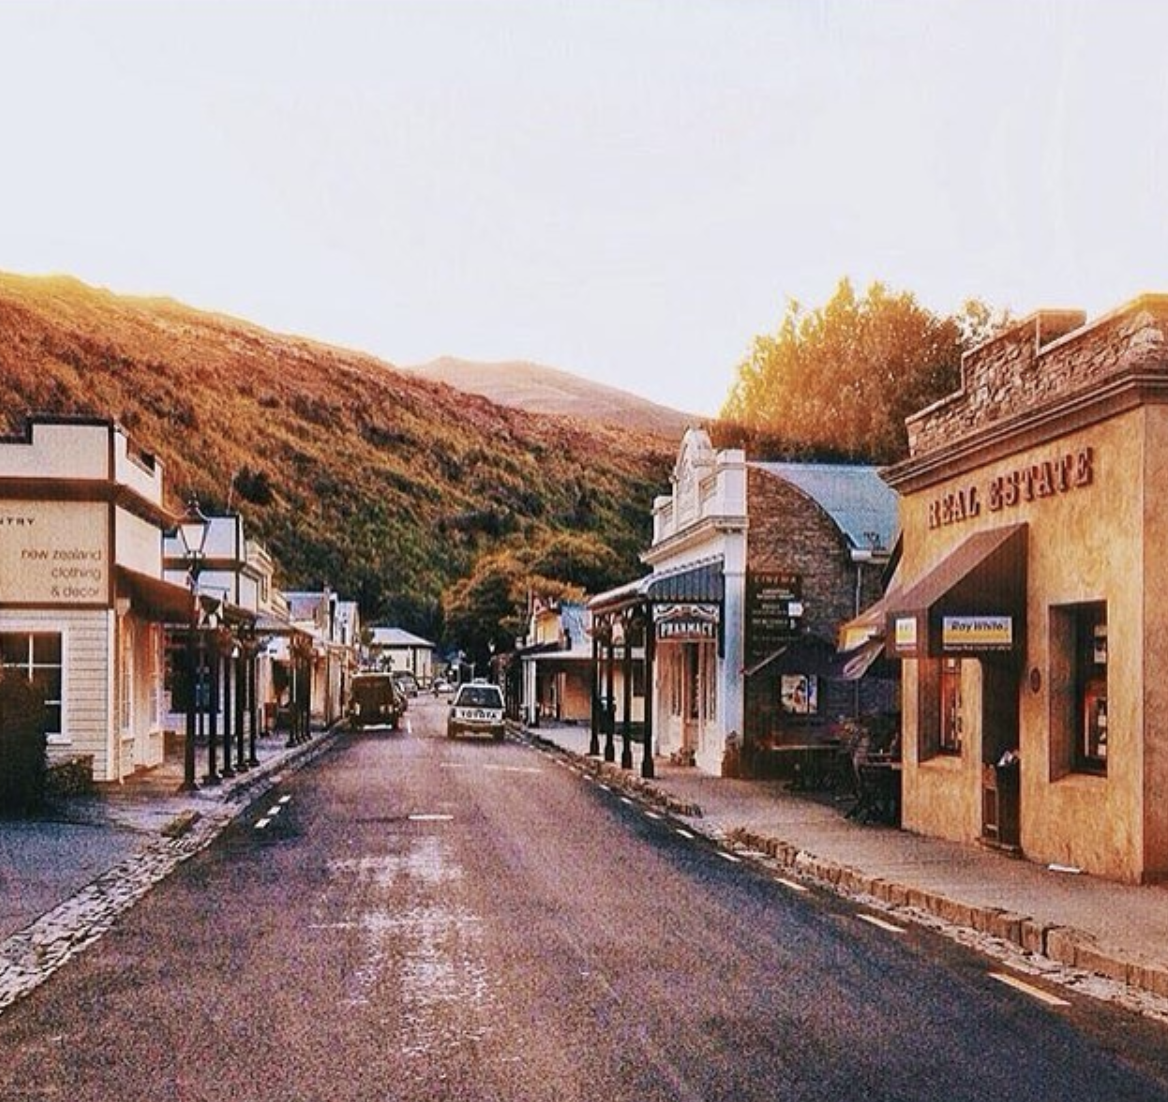 Visit the heritage town Arrowtown - Arrowtown is charming and quirky – a delightful gold rush village nestled below the beautiful peaks that surround the sparkling Arrow River.